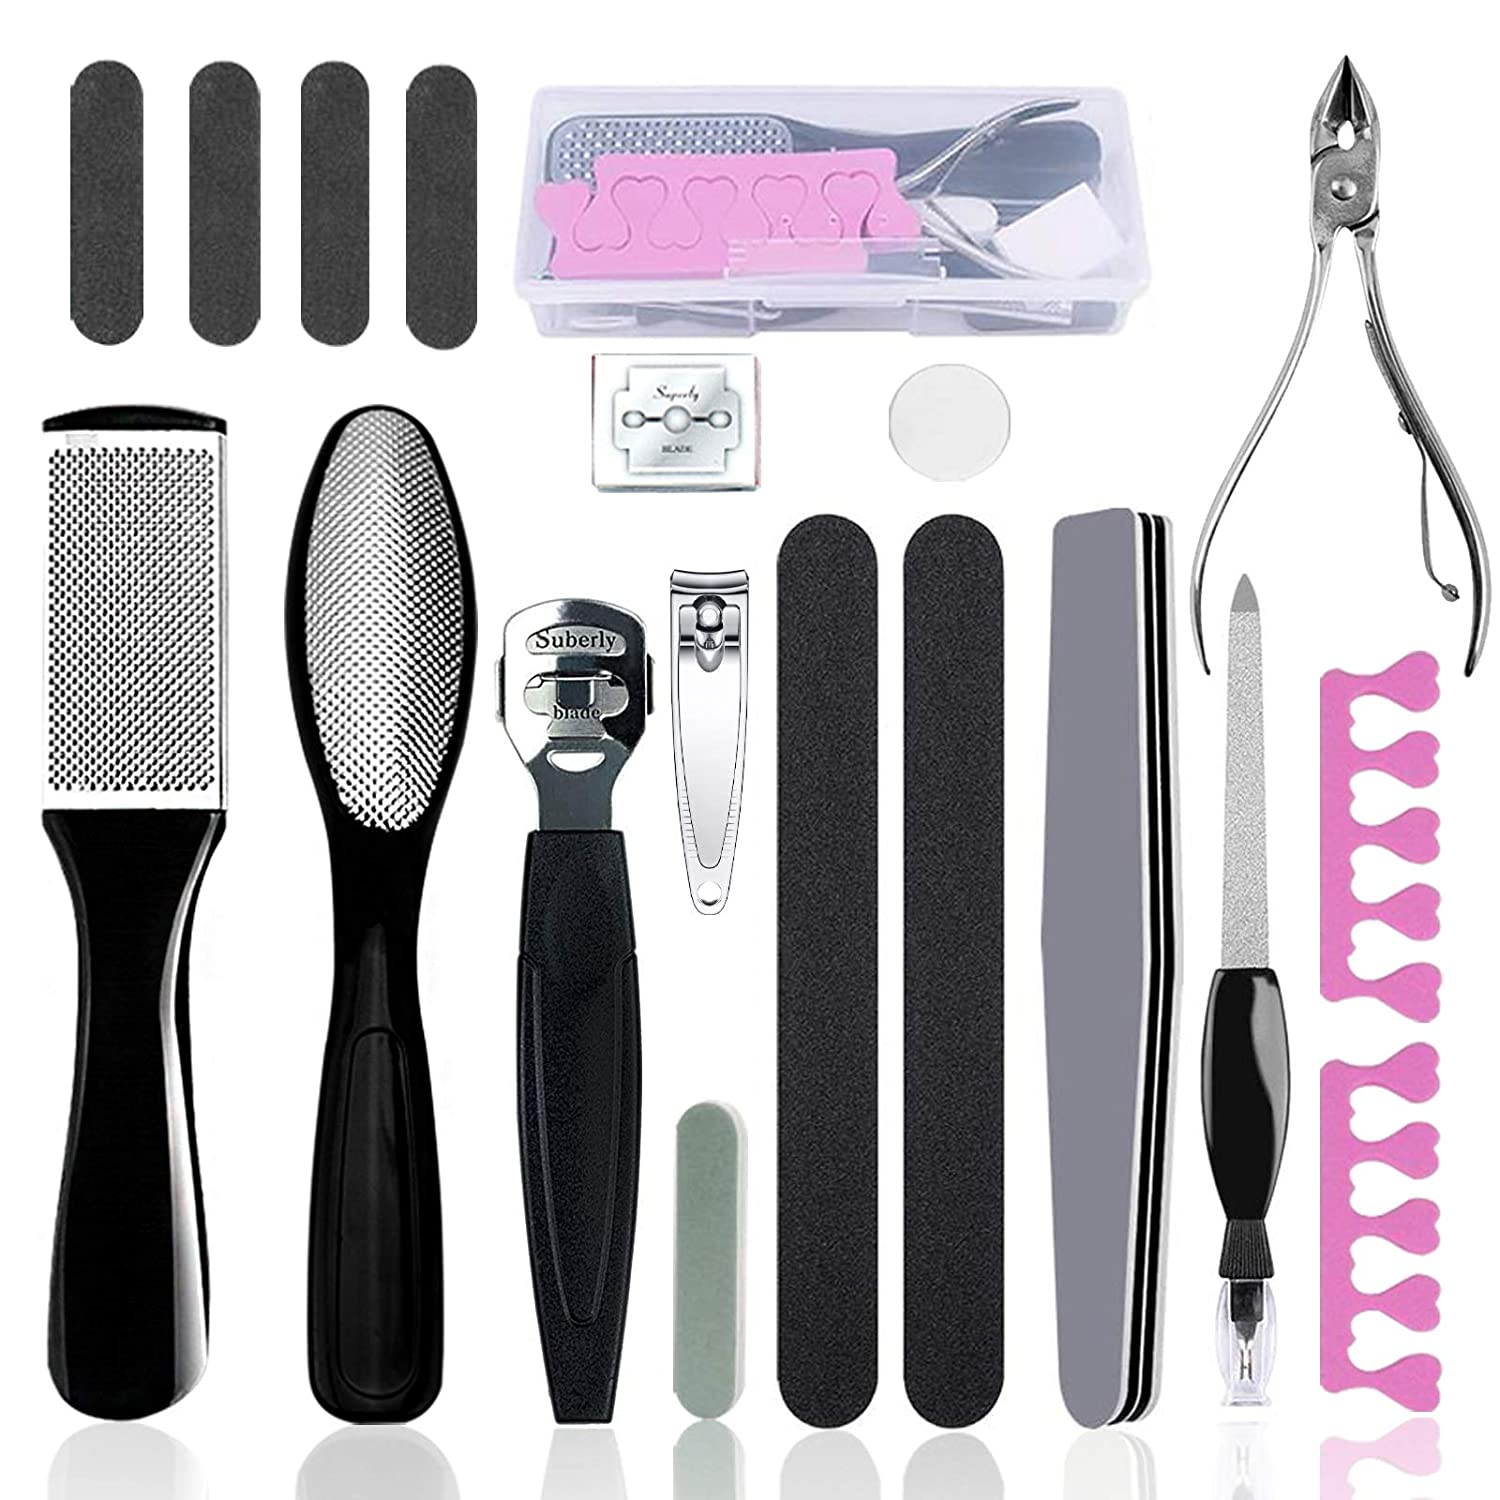 Pedicure Kit Set 18 in 1, Doni Foot Scrubber Pedicure Tools Set, Stainless Steel Foot Care Tools, Foot Rasp, Foot Dead Skin Remover, Callus Remover for Feet, Pedicure Kit for Men Women Gift